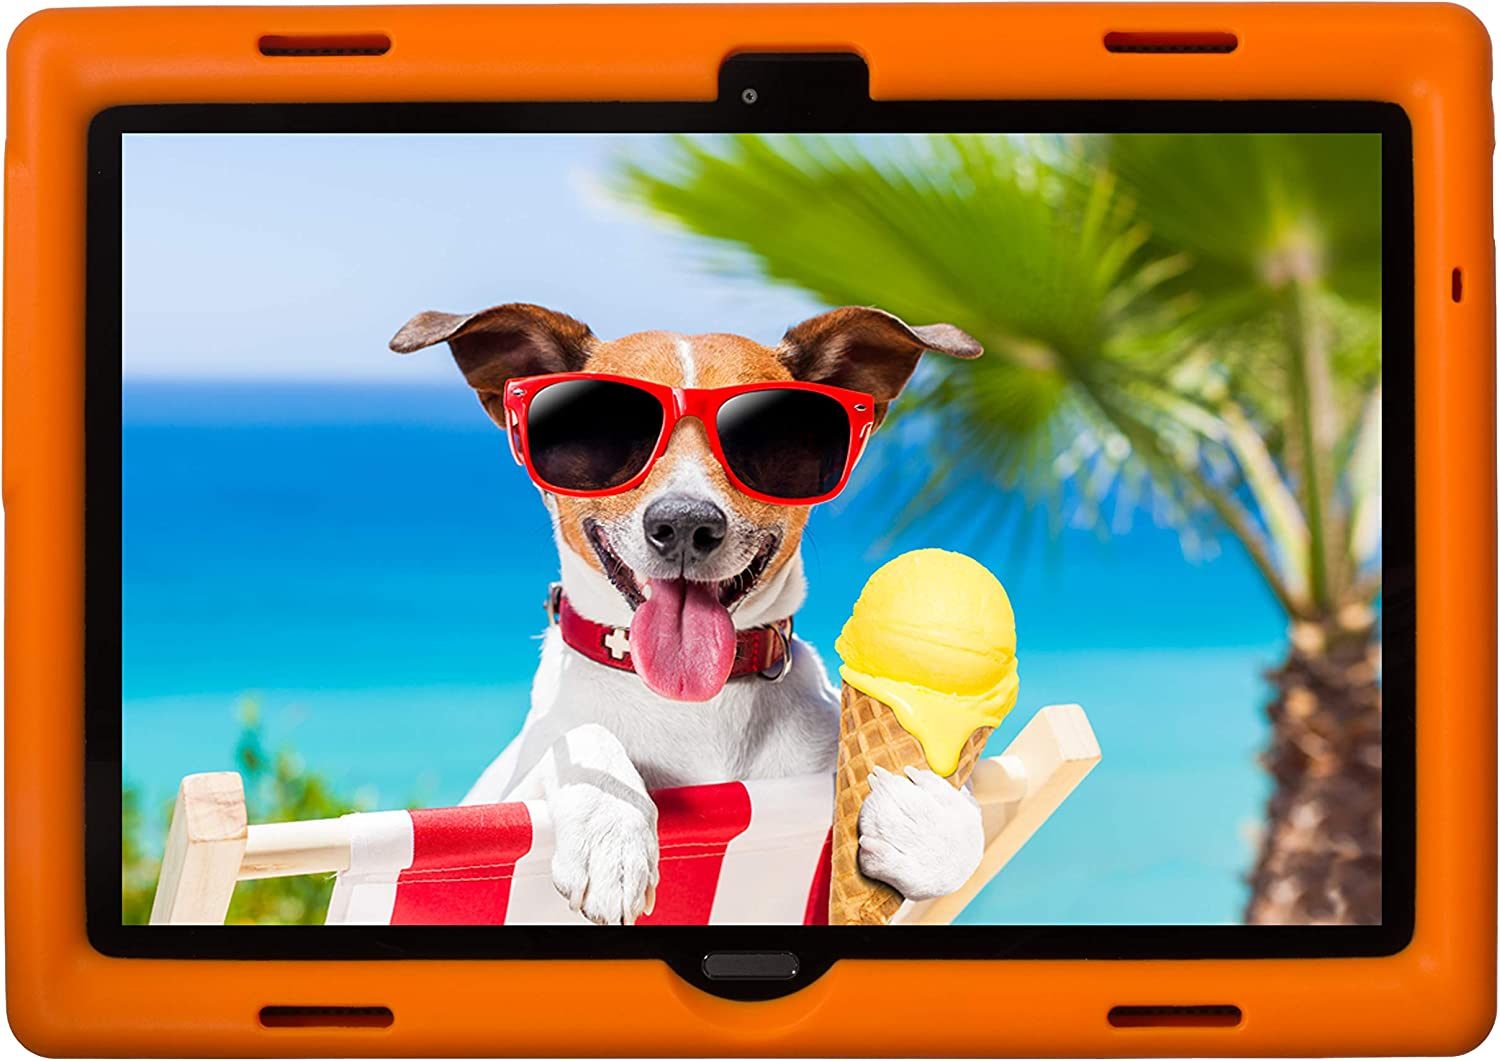 BobjGear Bobj Rugged Tablet Case for Lenovo Smart Tab M10 10.1 inch (TB-X605F, TB-X505F,I,L) and P10 (TB-X705F) Kid Friendly (Outrageous Orange)